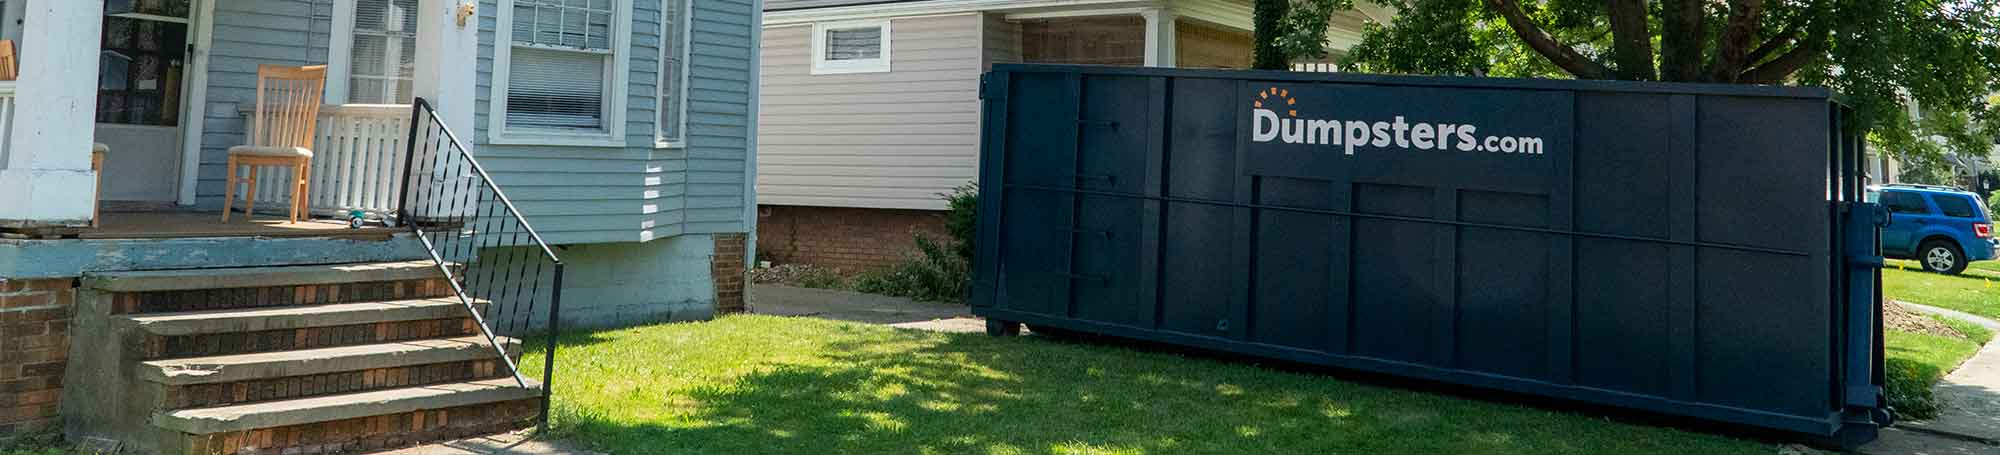 Roll Off Dumpster in a Residential Driveway Next to a Blue House.